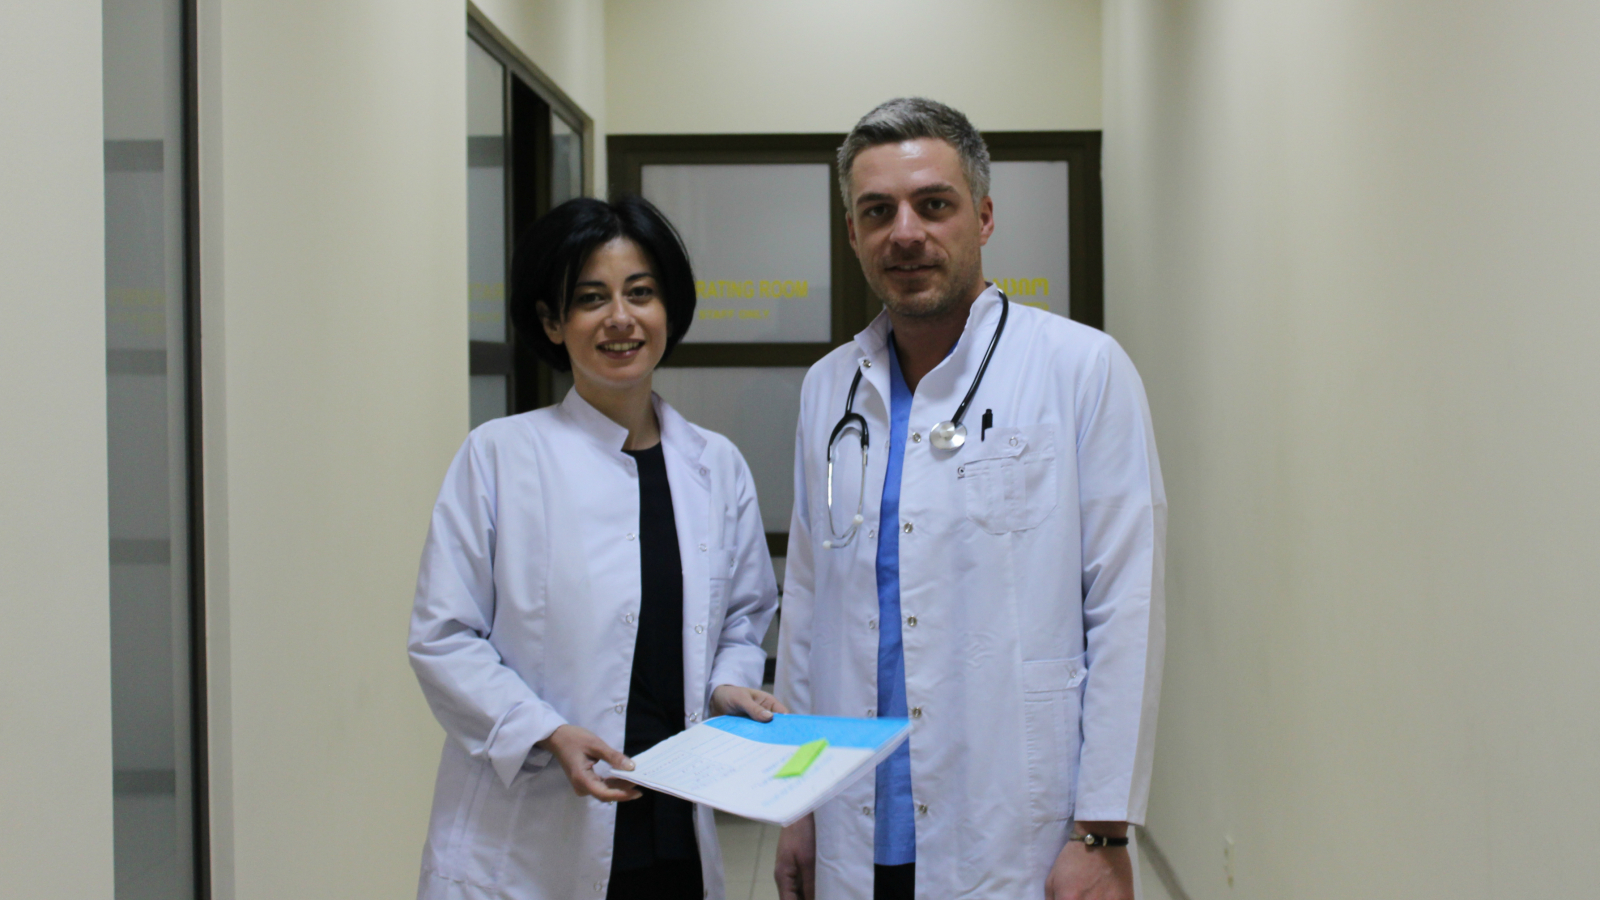 Tekla Mamageishvili and Nika Kacharava before surgery